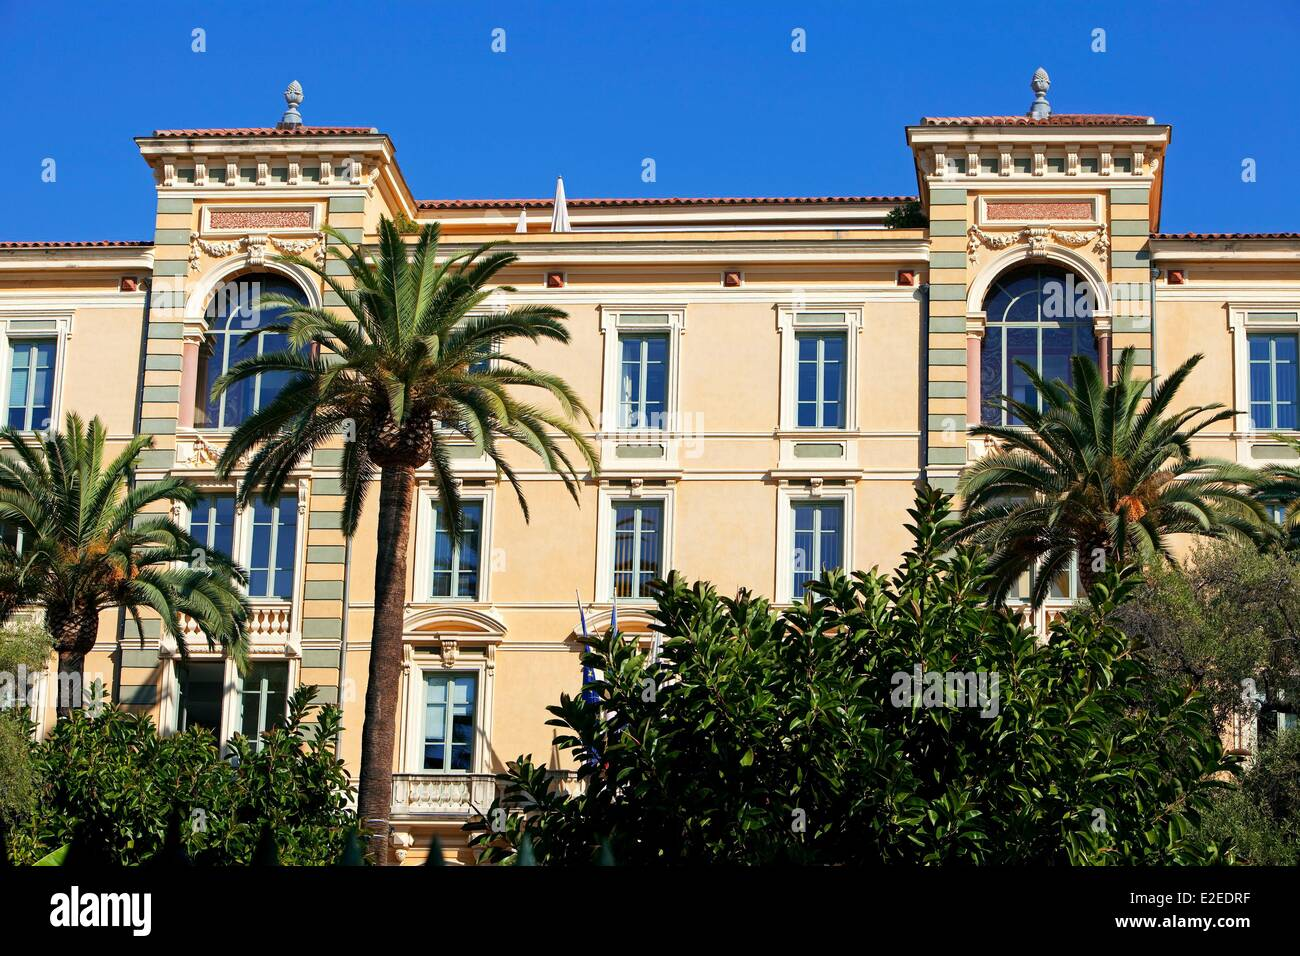 France corse du sud ajaccio the seat of the general for Hotel design sud france